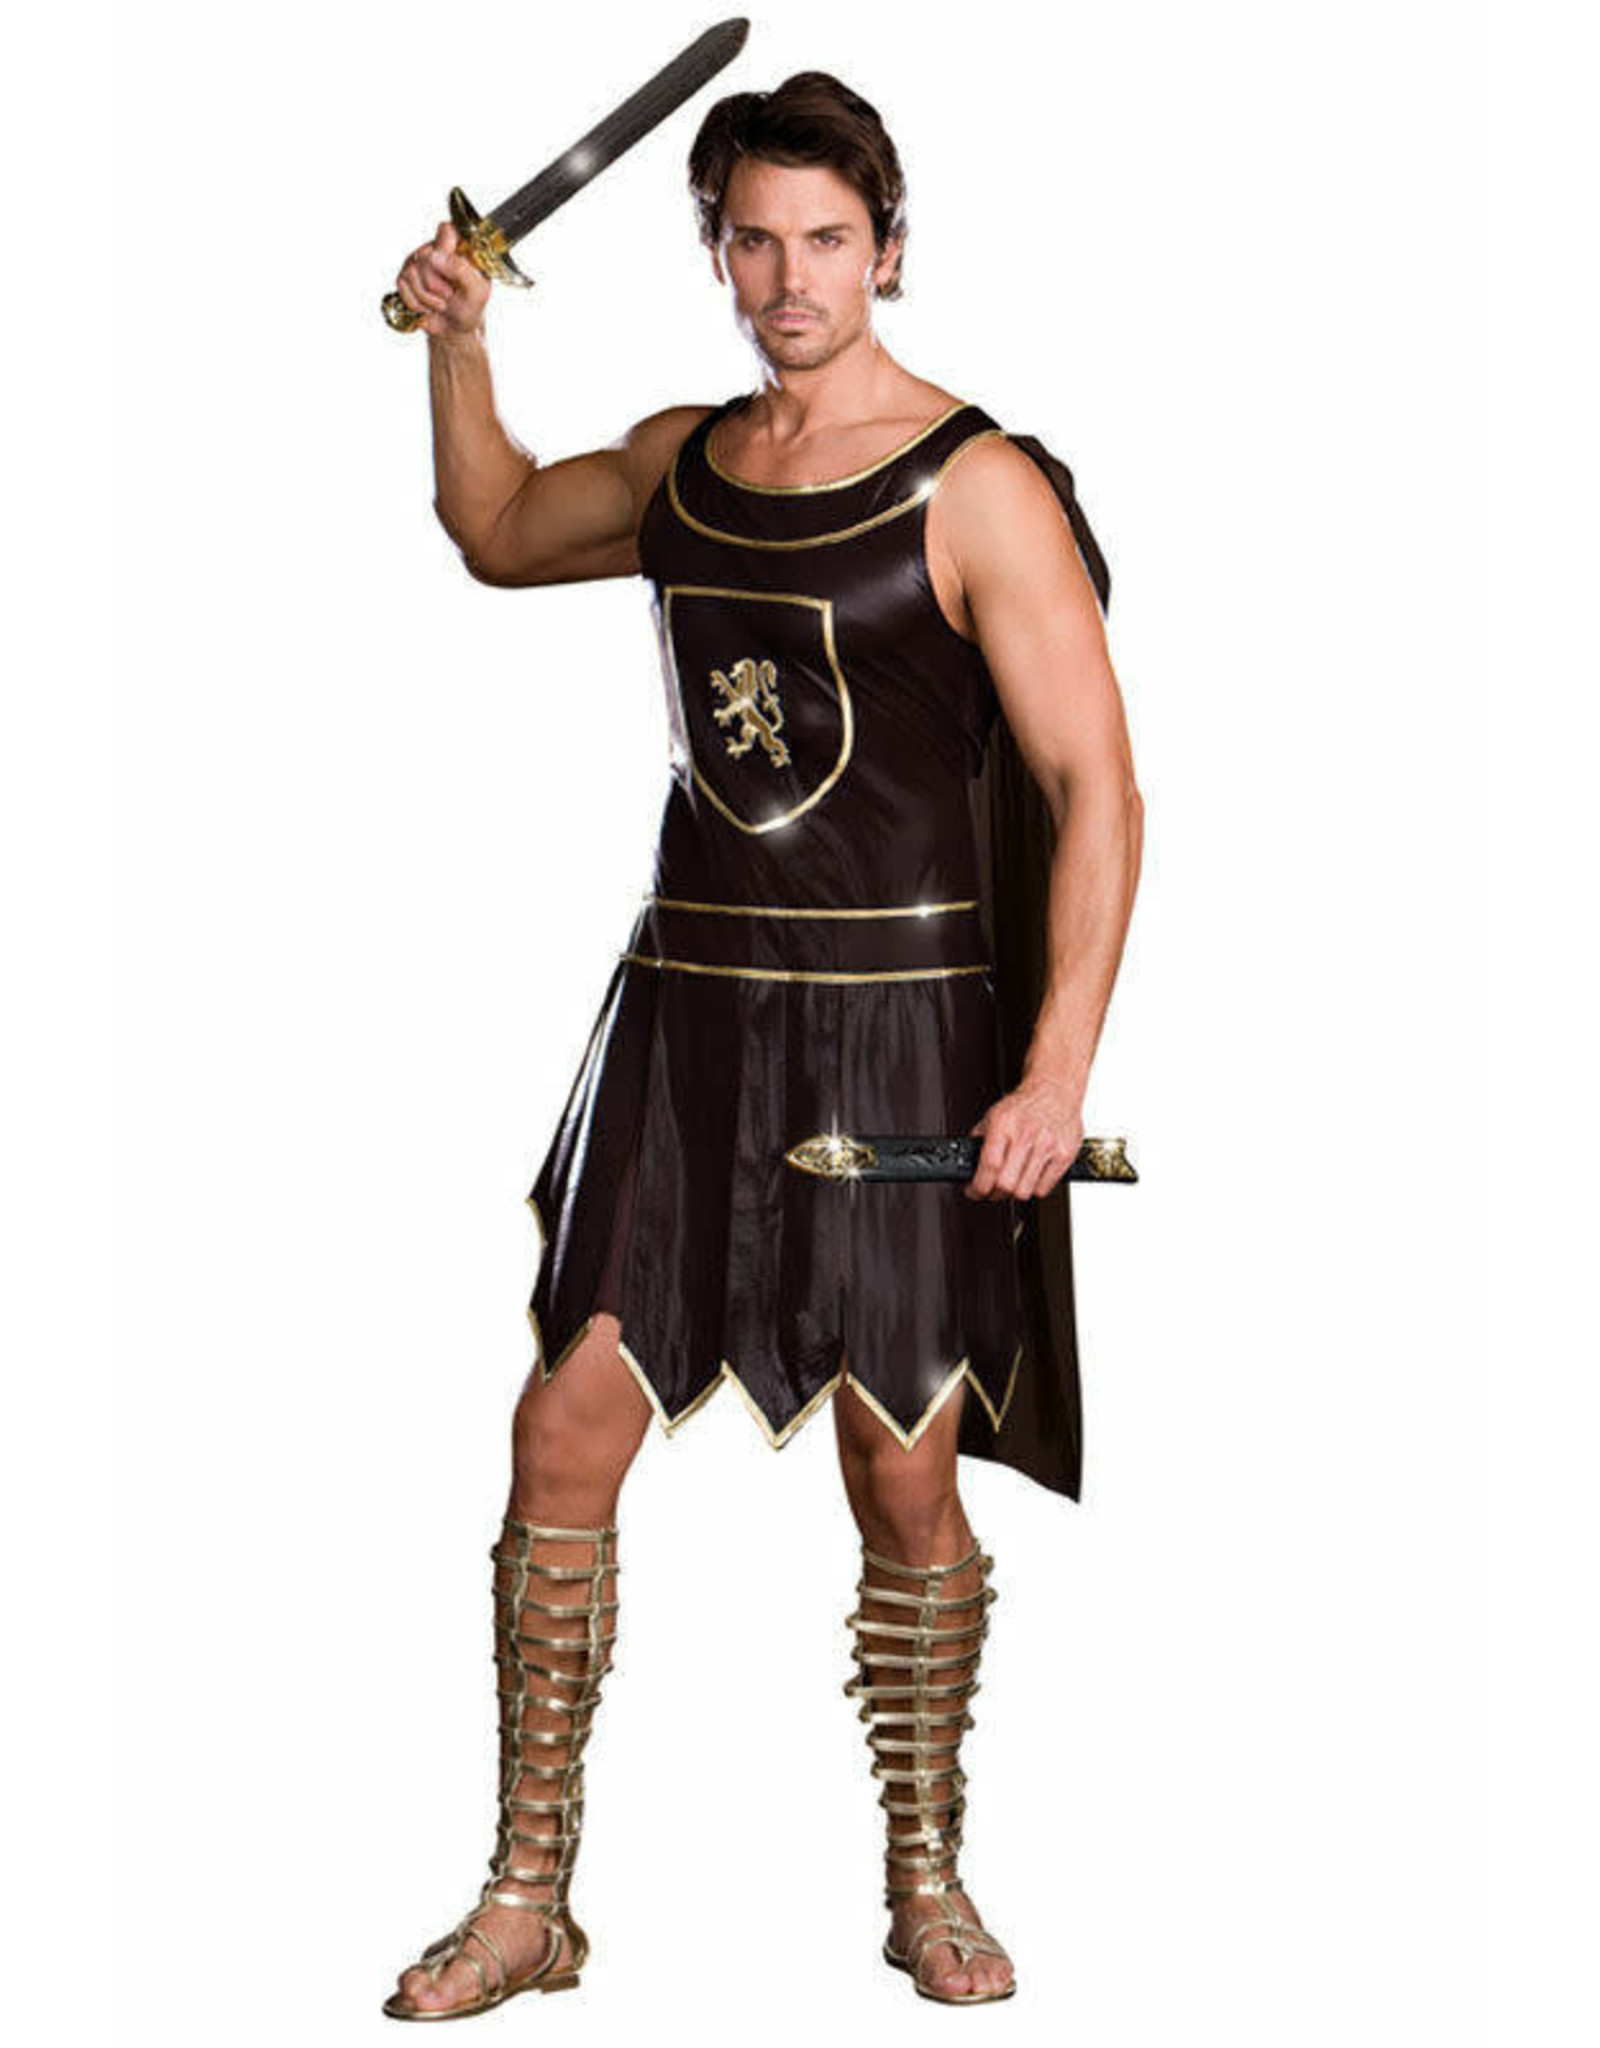 DREAMGUY DREAMGUY - BABE-A-LONIAN WARRIOR KING - LARGE - COSTUME